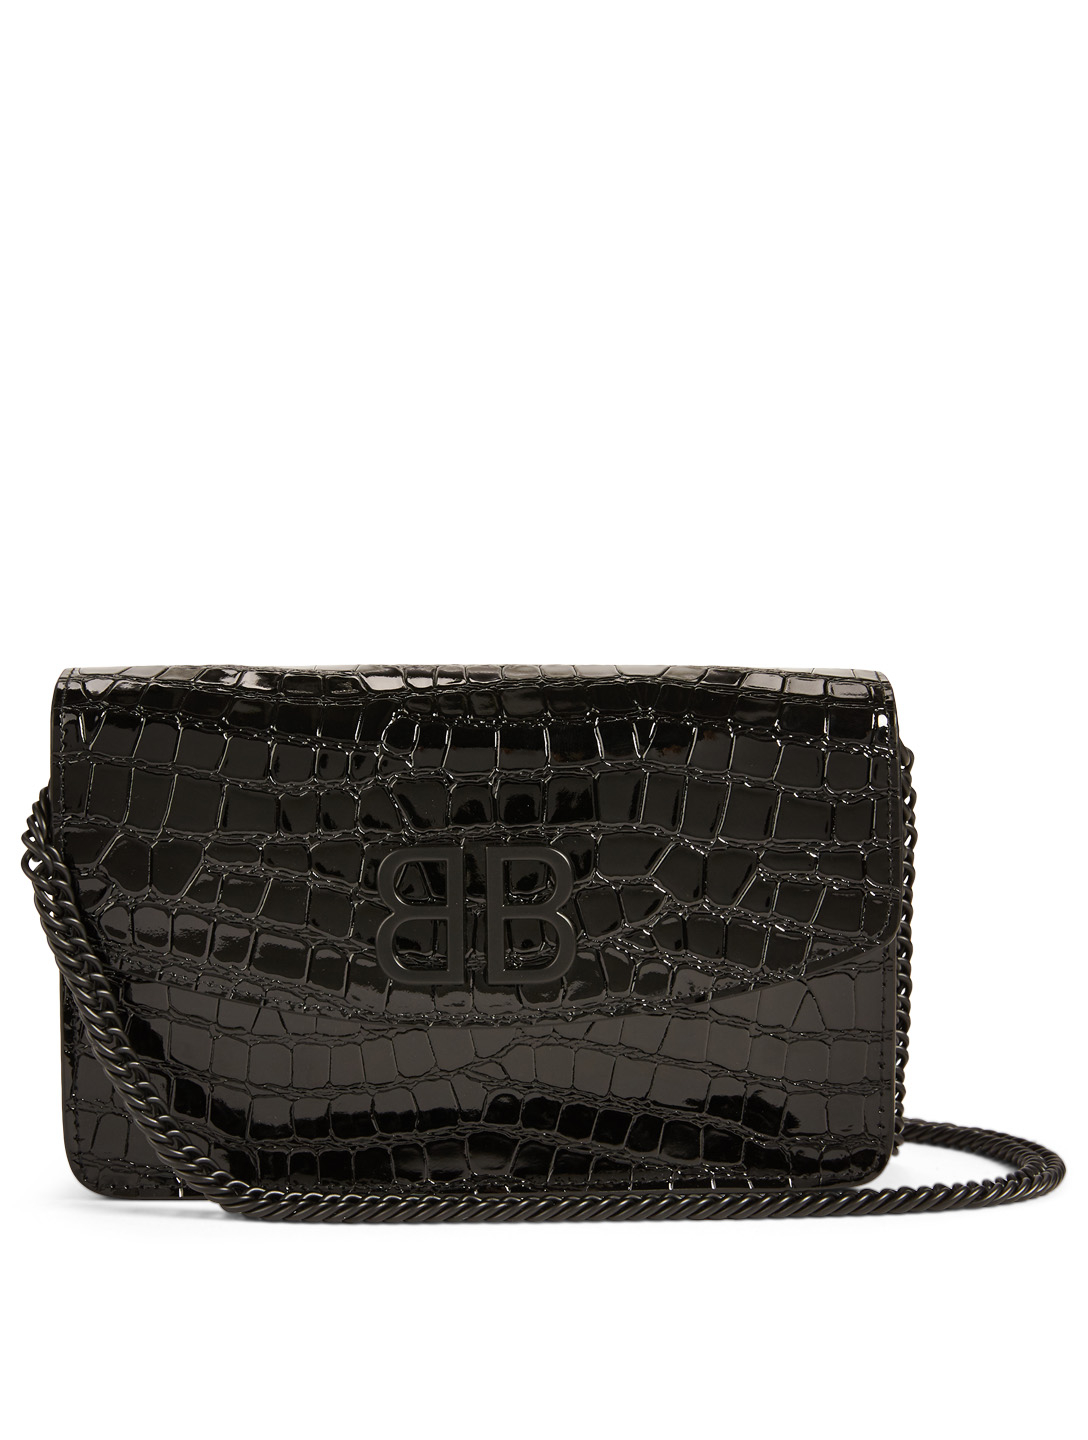 64426b35679 BALENCIAGA BB Chain Wallet Croc-Embossed Leather Crossbody Bag In Logo  Print Women's Black ...